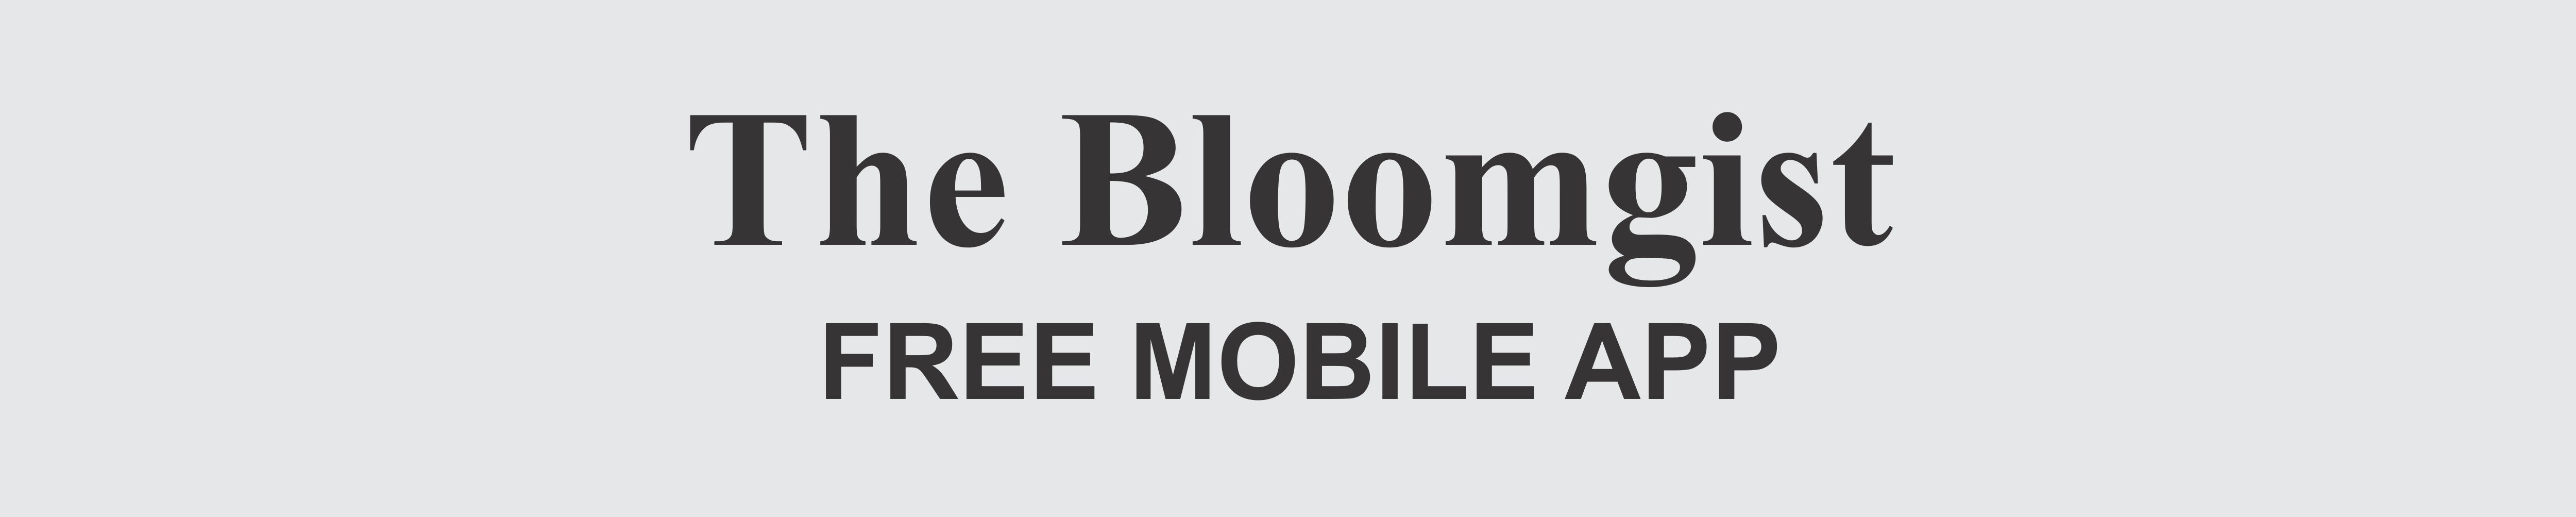 cropped-bloomgist-mobile-app-4.png